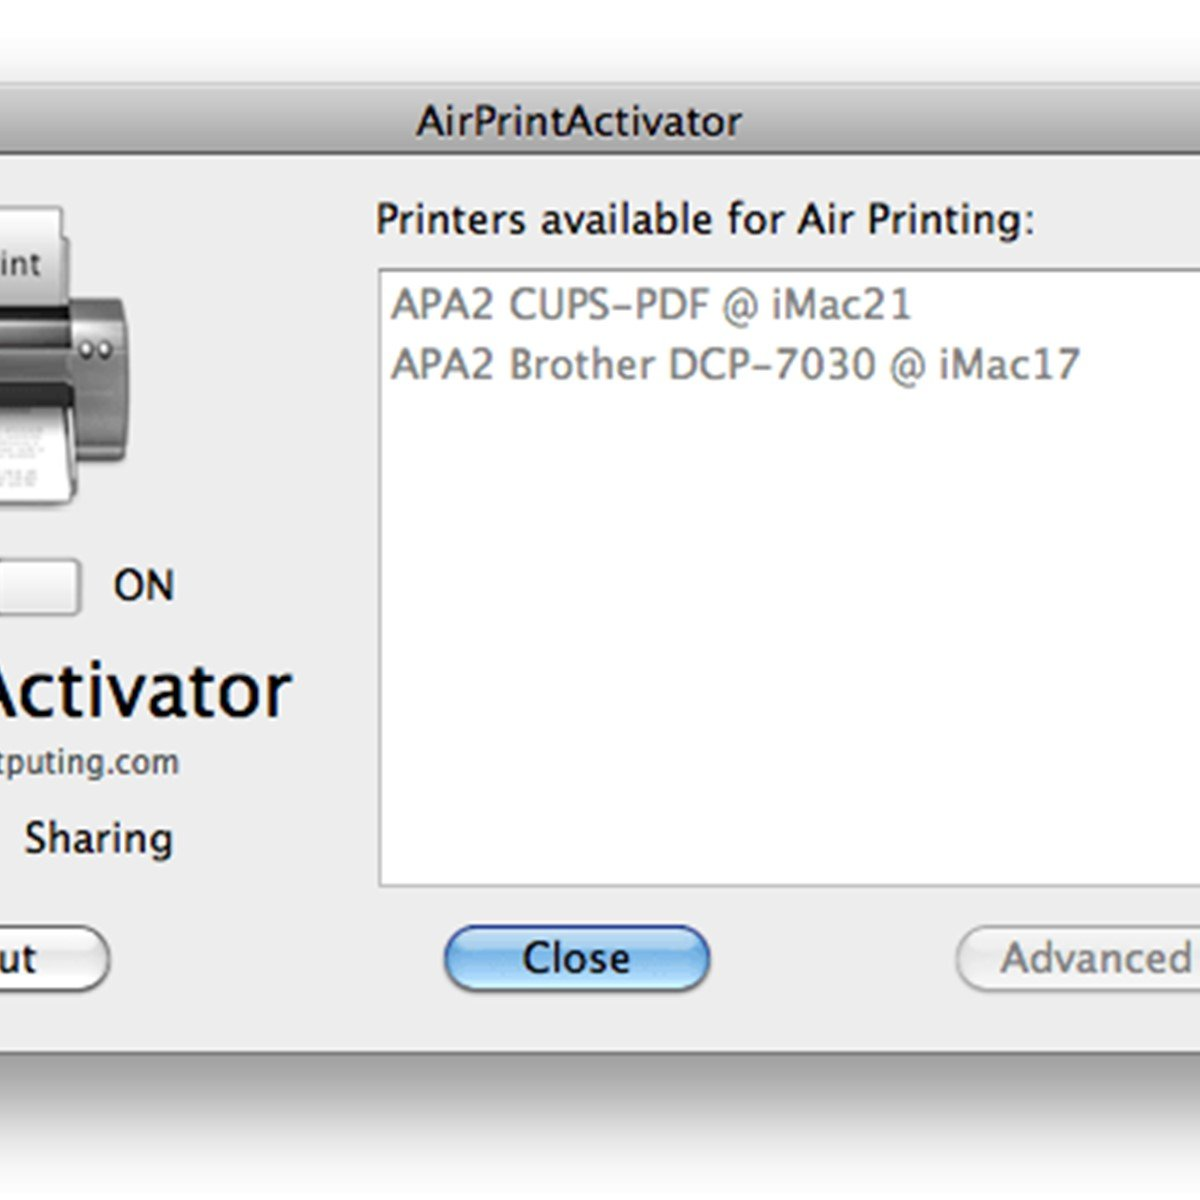 print from web application to local printer